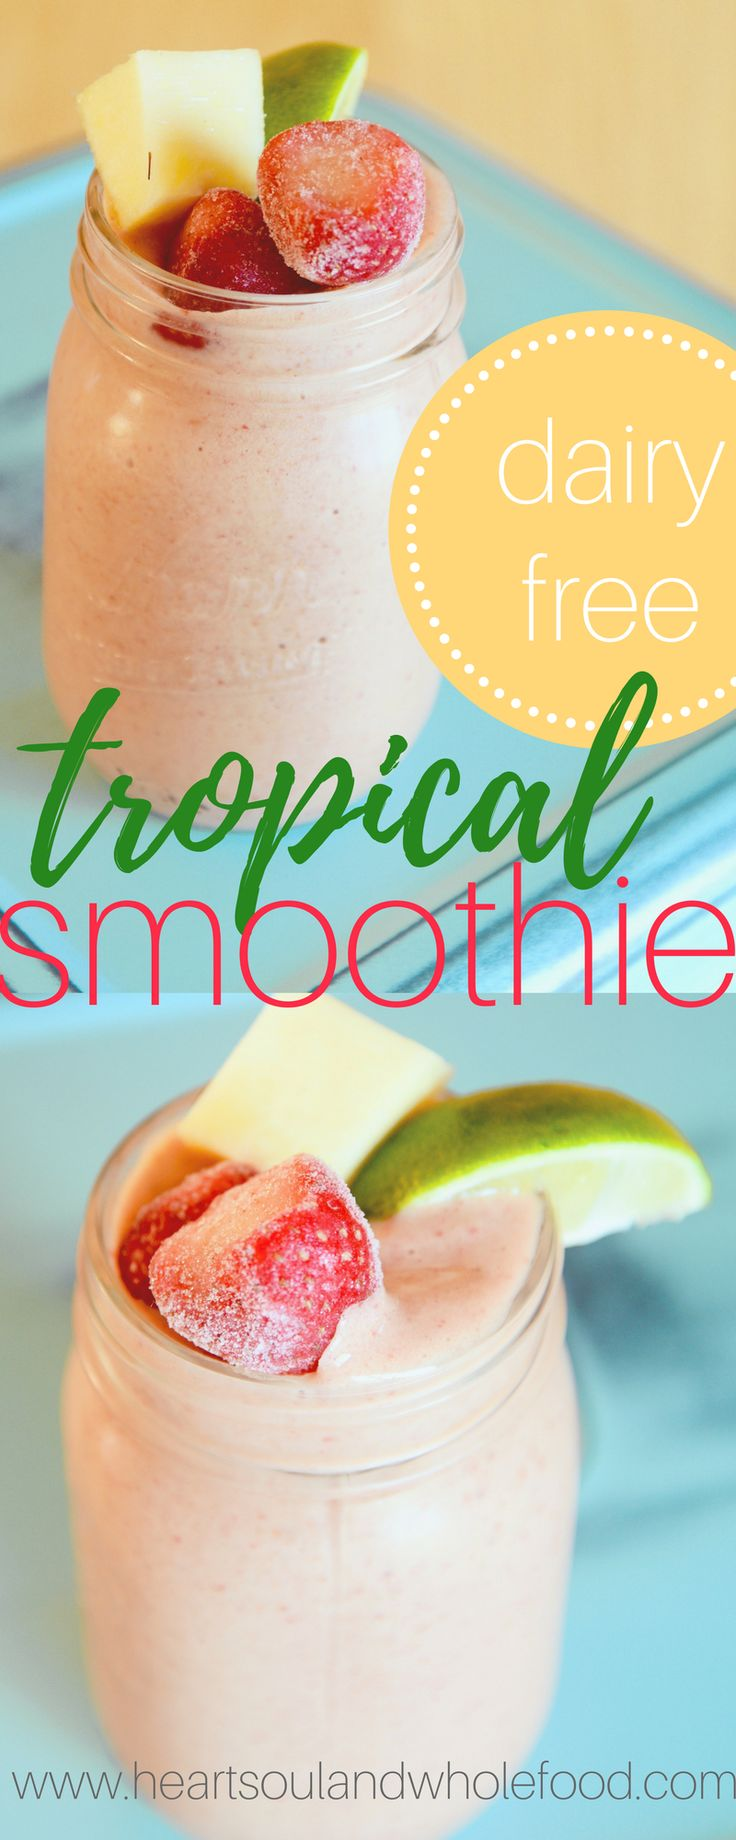 Here is an all fruit, dairy free smoothie recipe. A strawberry banana smoothie with some fresh squeezed pineapple juice and a squeeze of lime.